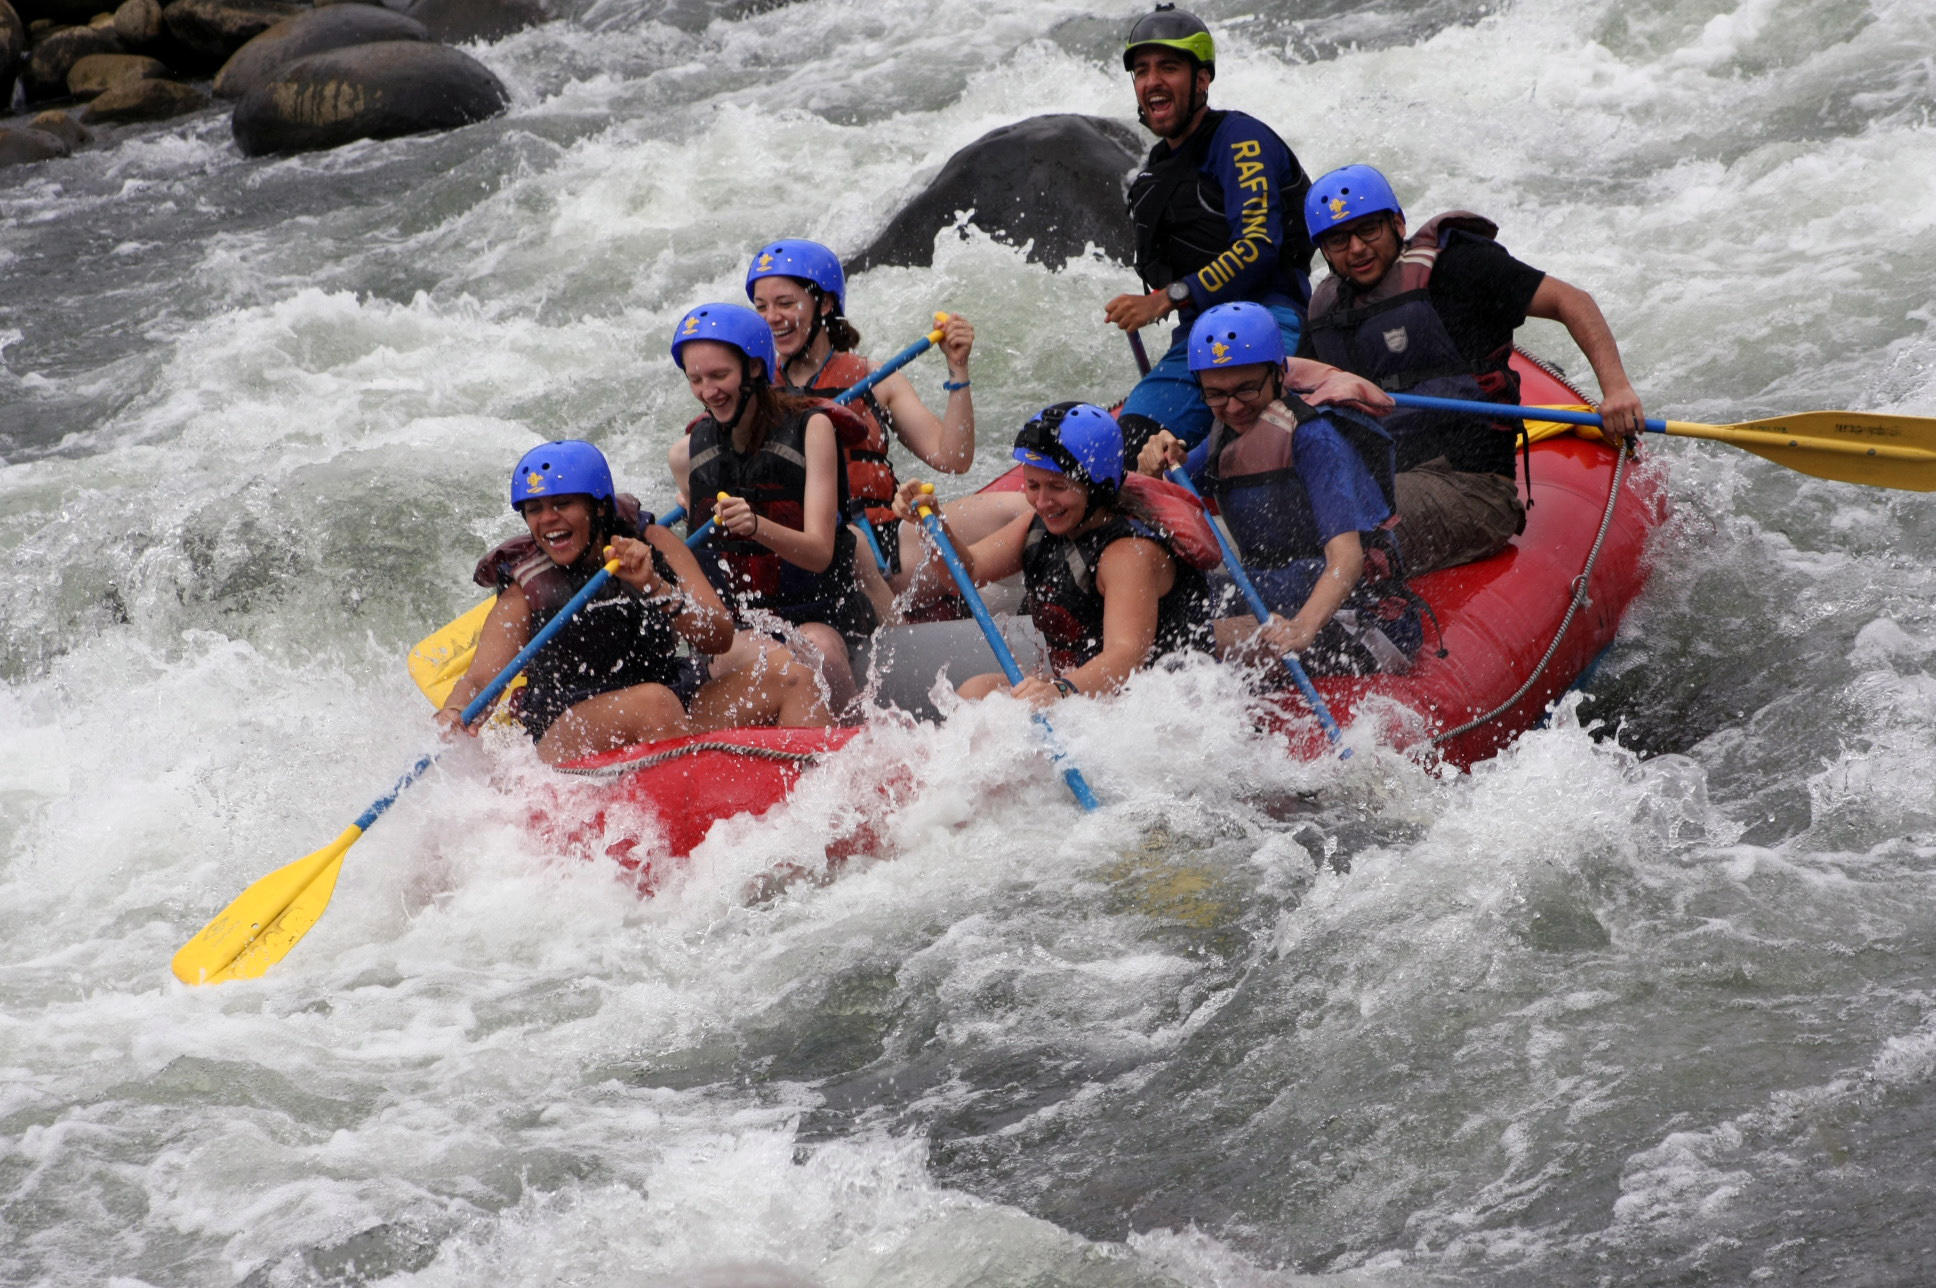 EPHS students go whitewater rafting during their Costa Rica summer trip.